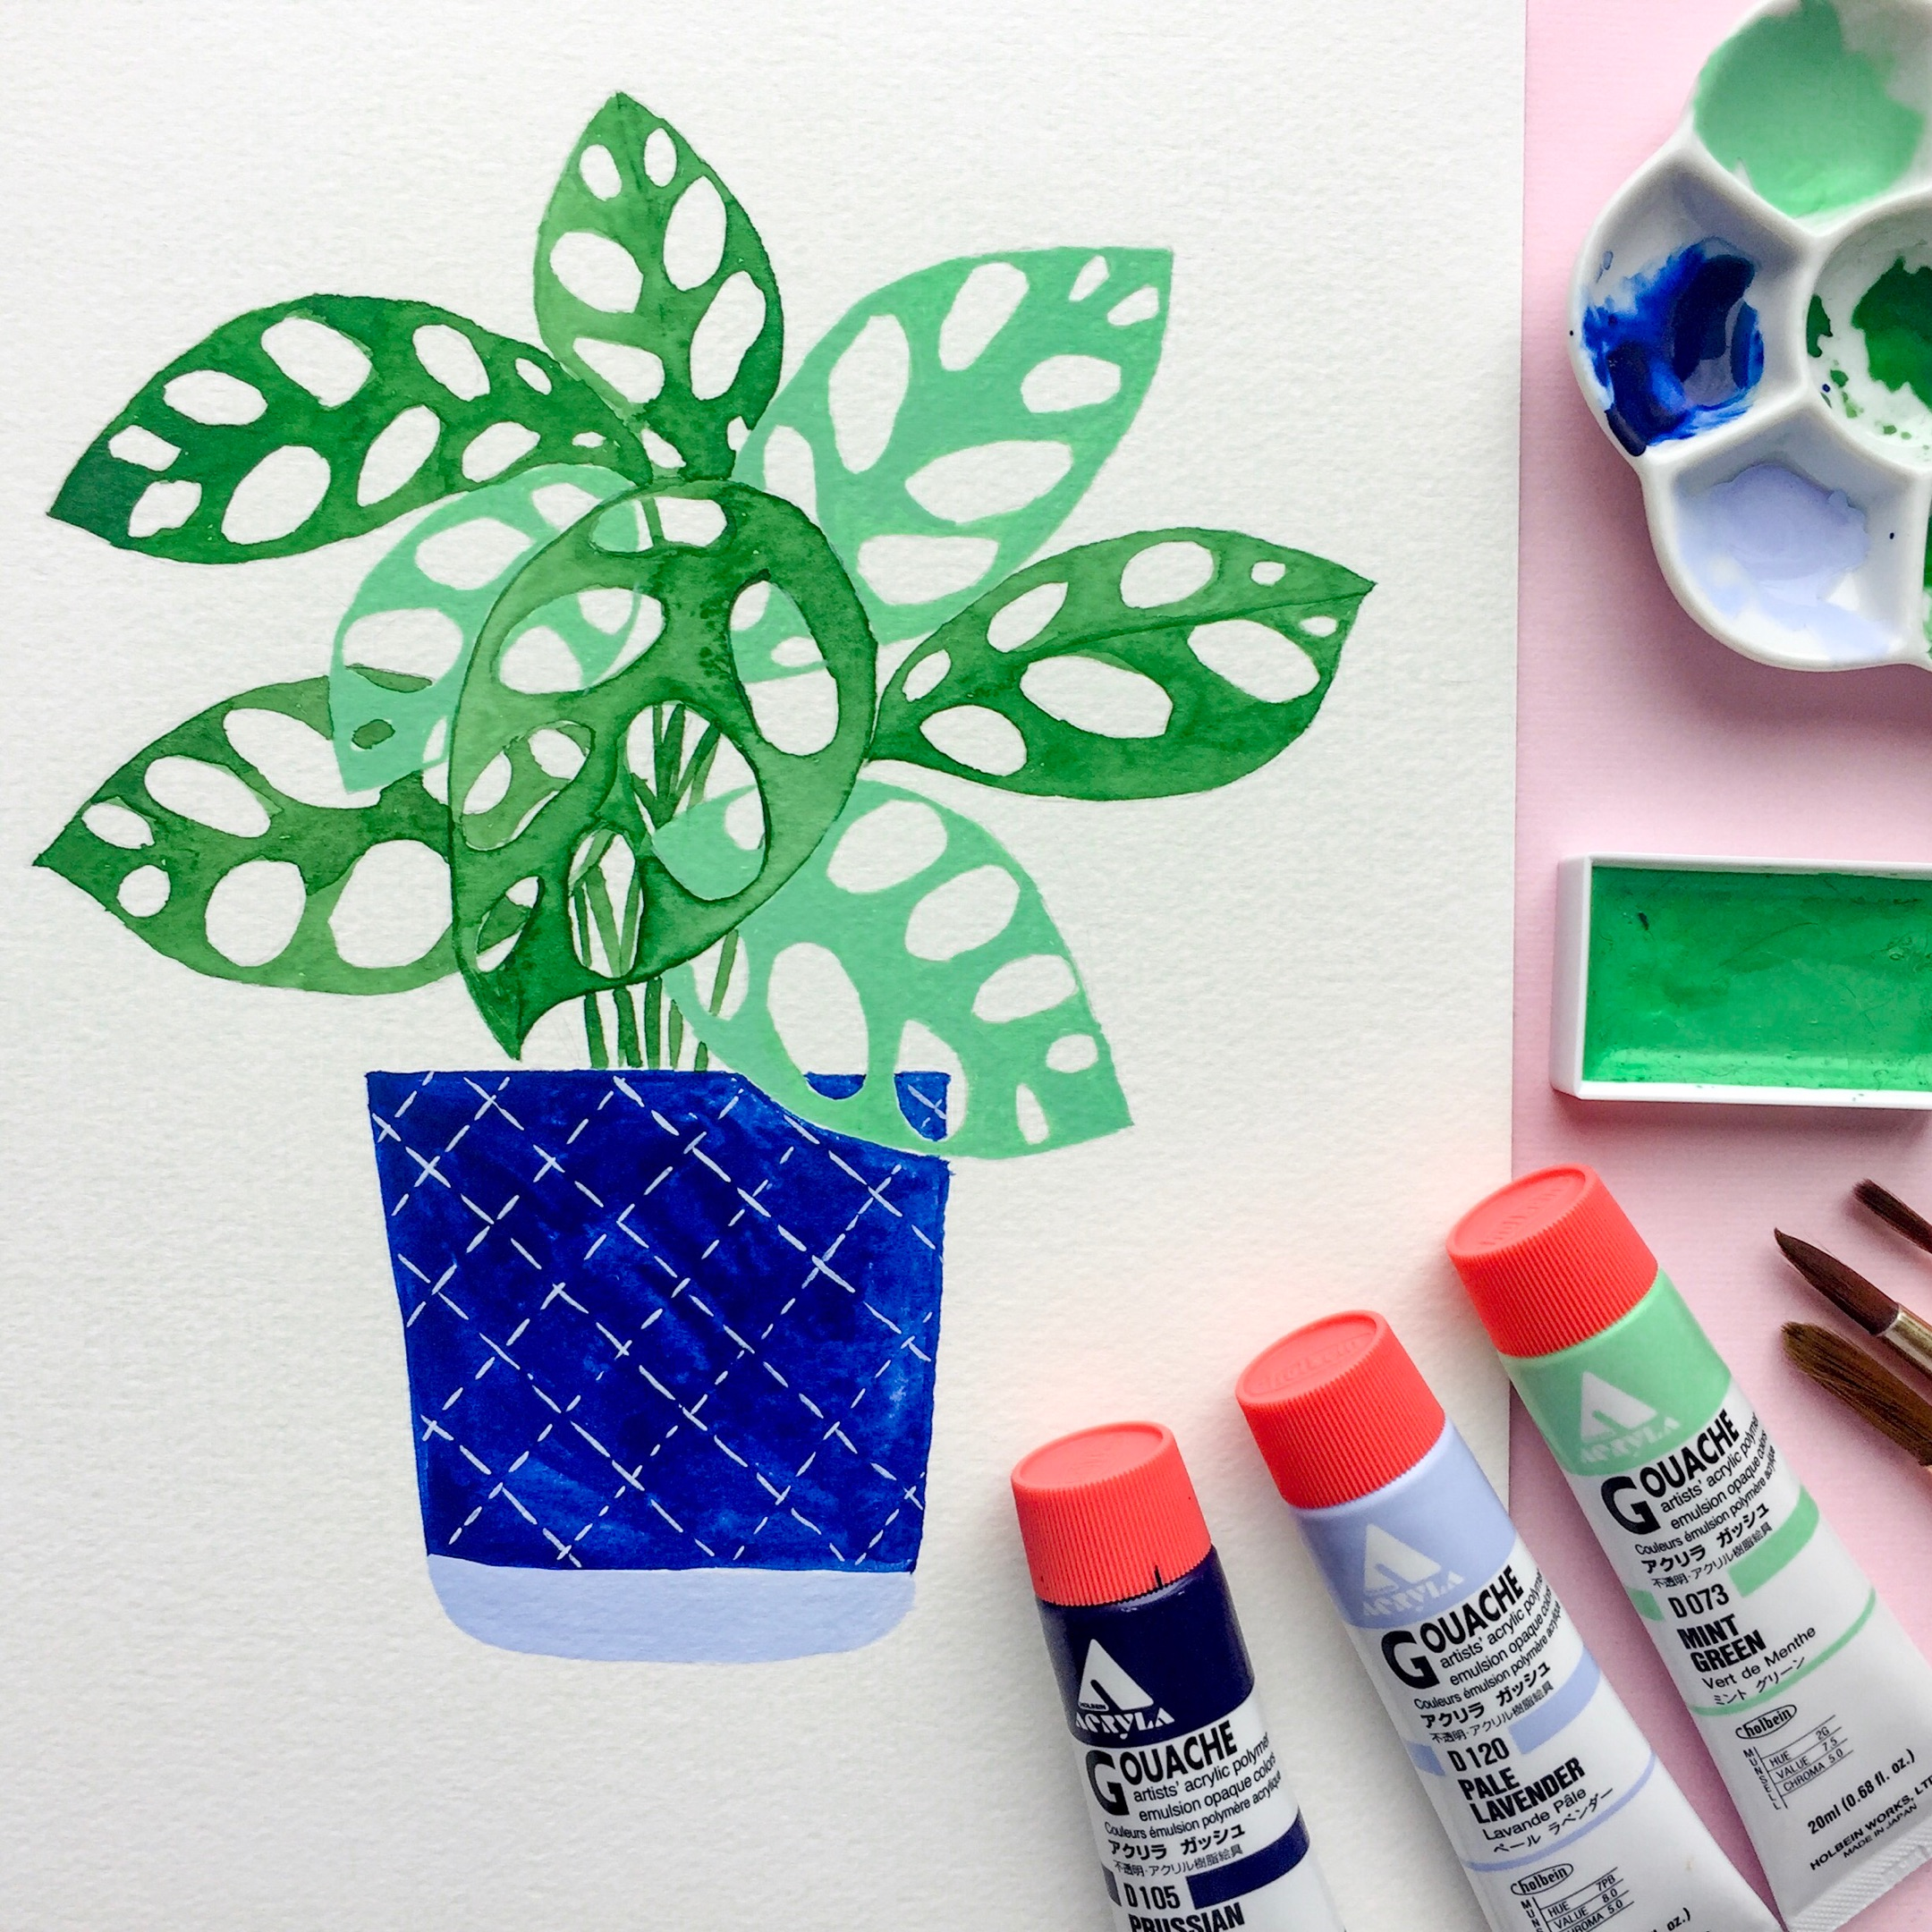 This is the plant I painted with gouache in this video!